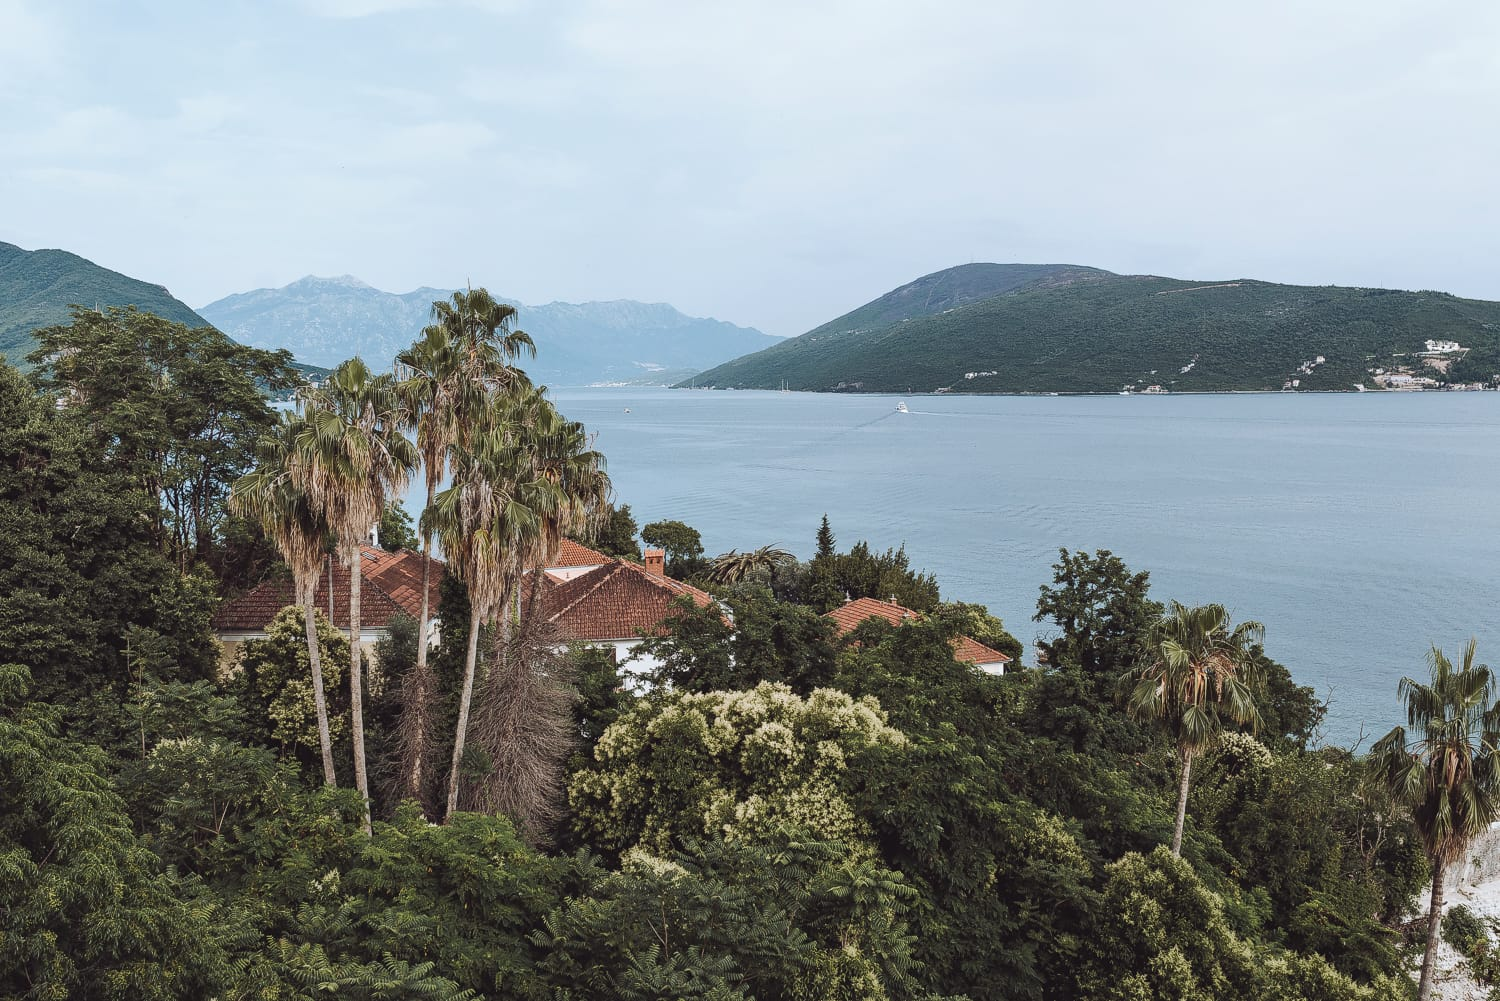 Herceg Novi, the Green City